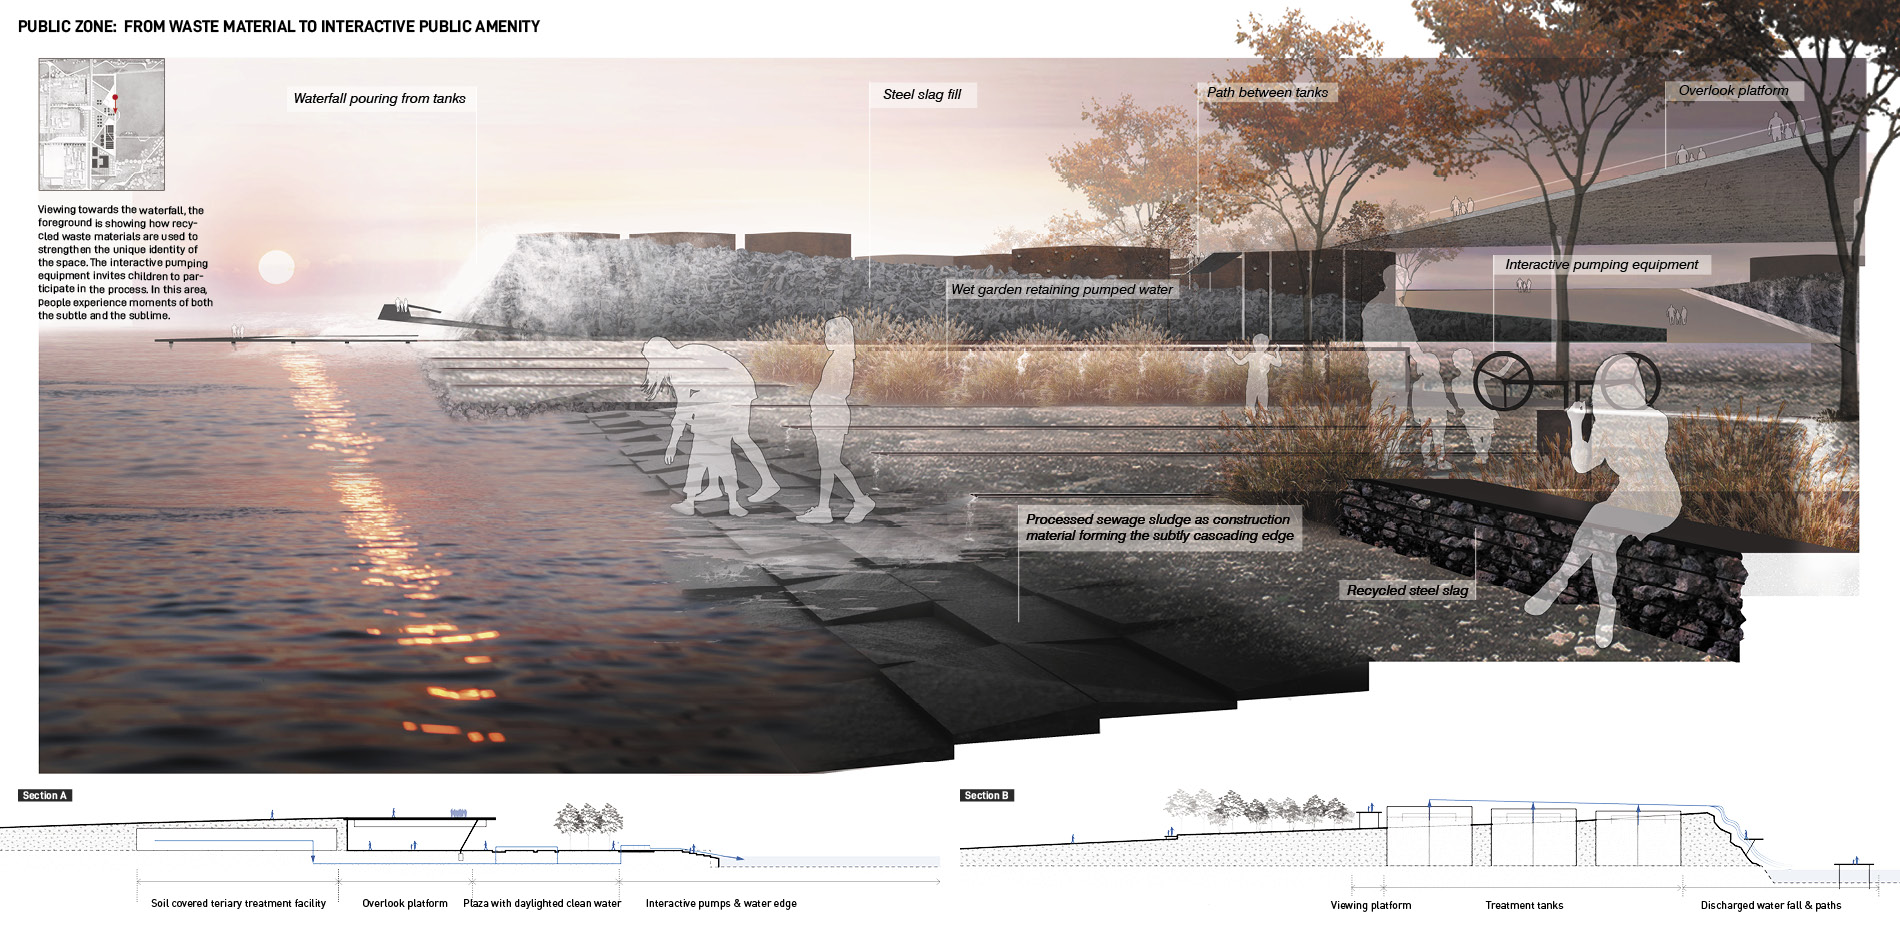 Sewage Plant Vision: From Waste to Public Amenity